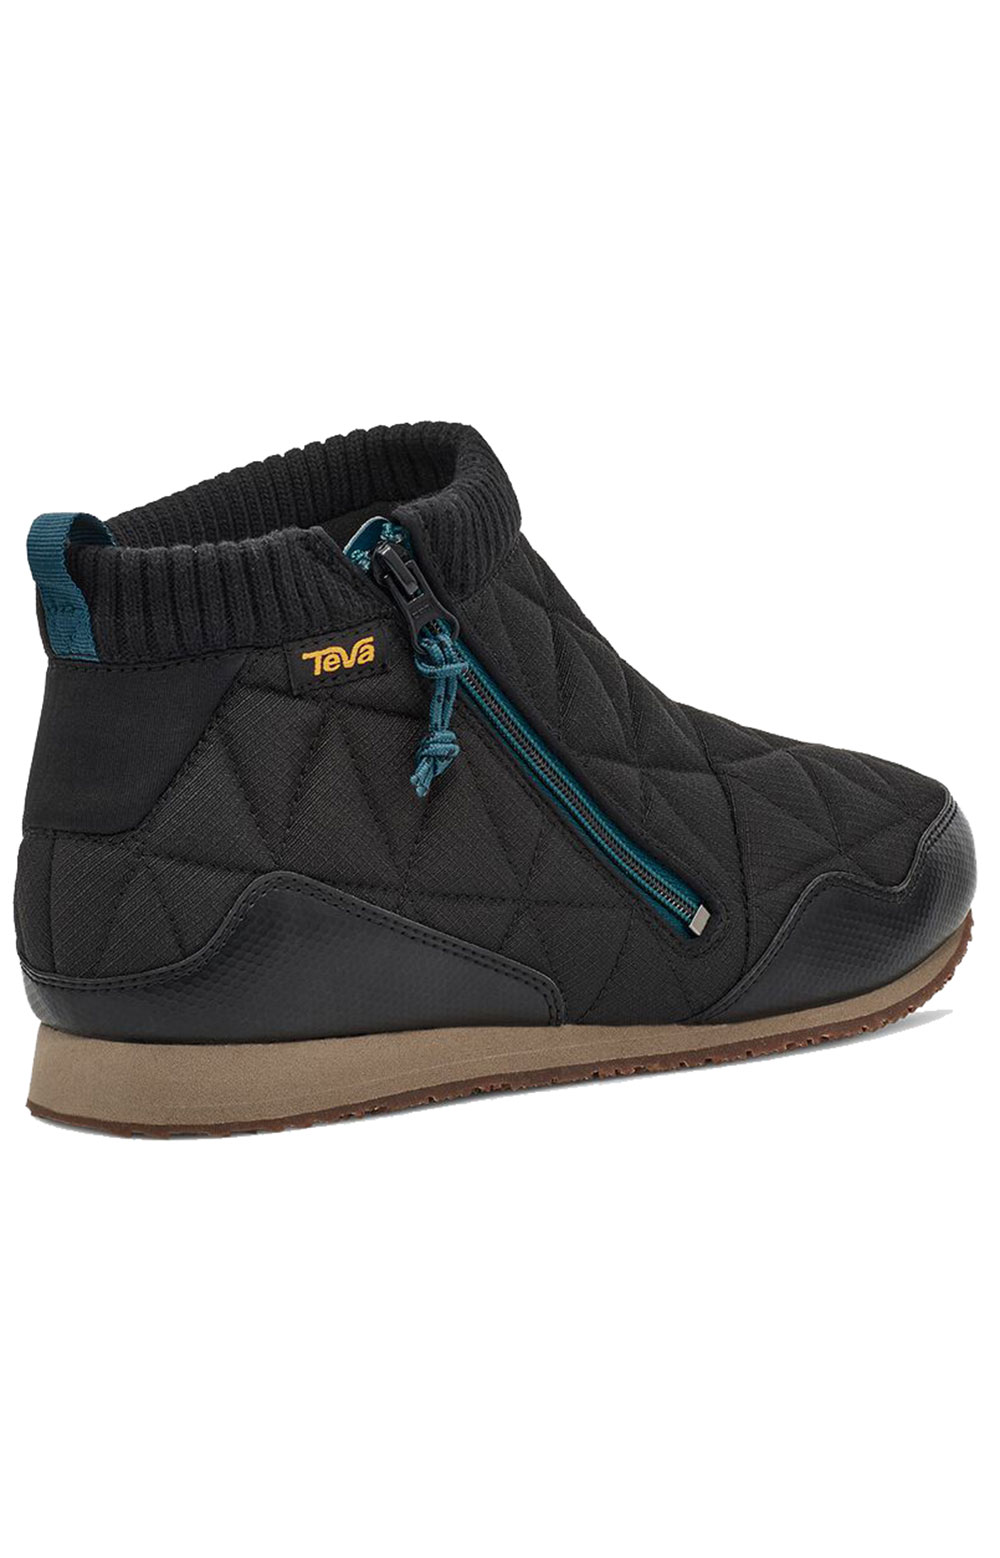 (1125310) ReEMBER MID Shoes - Black  4